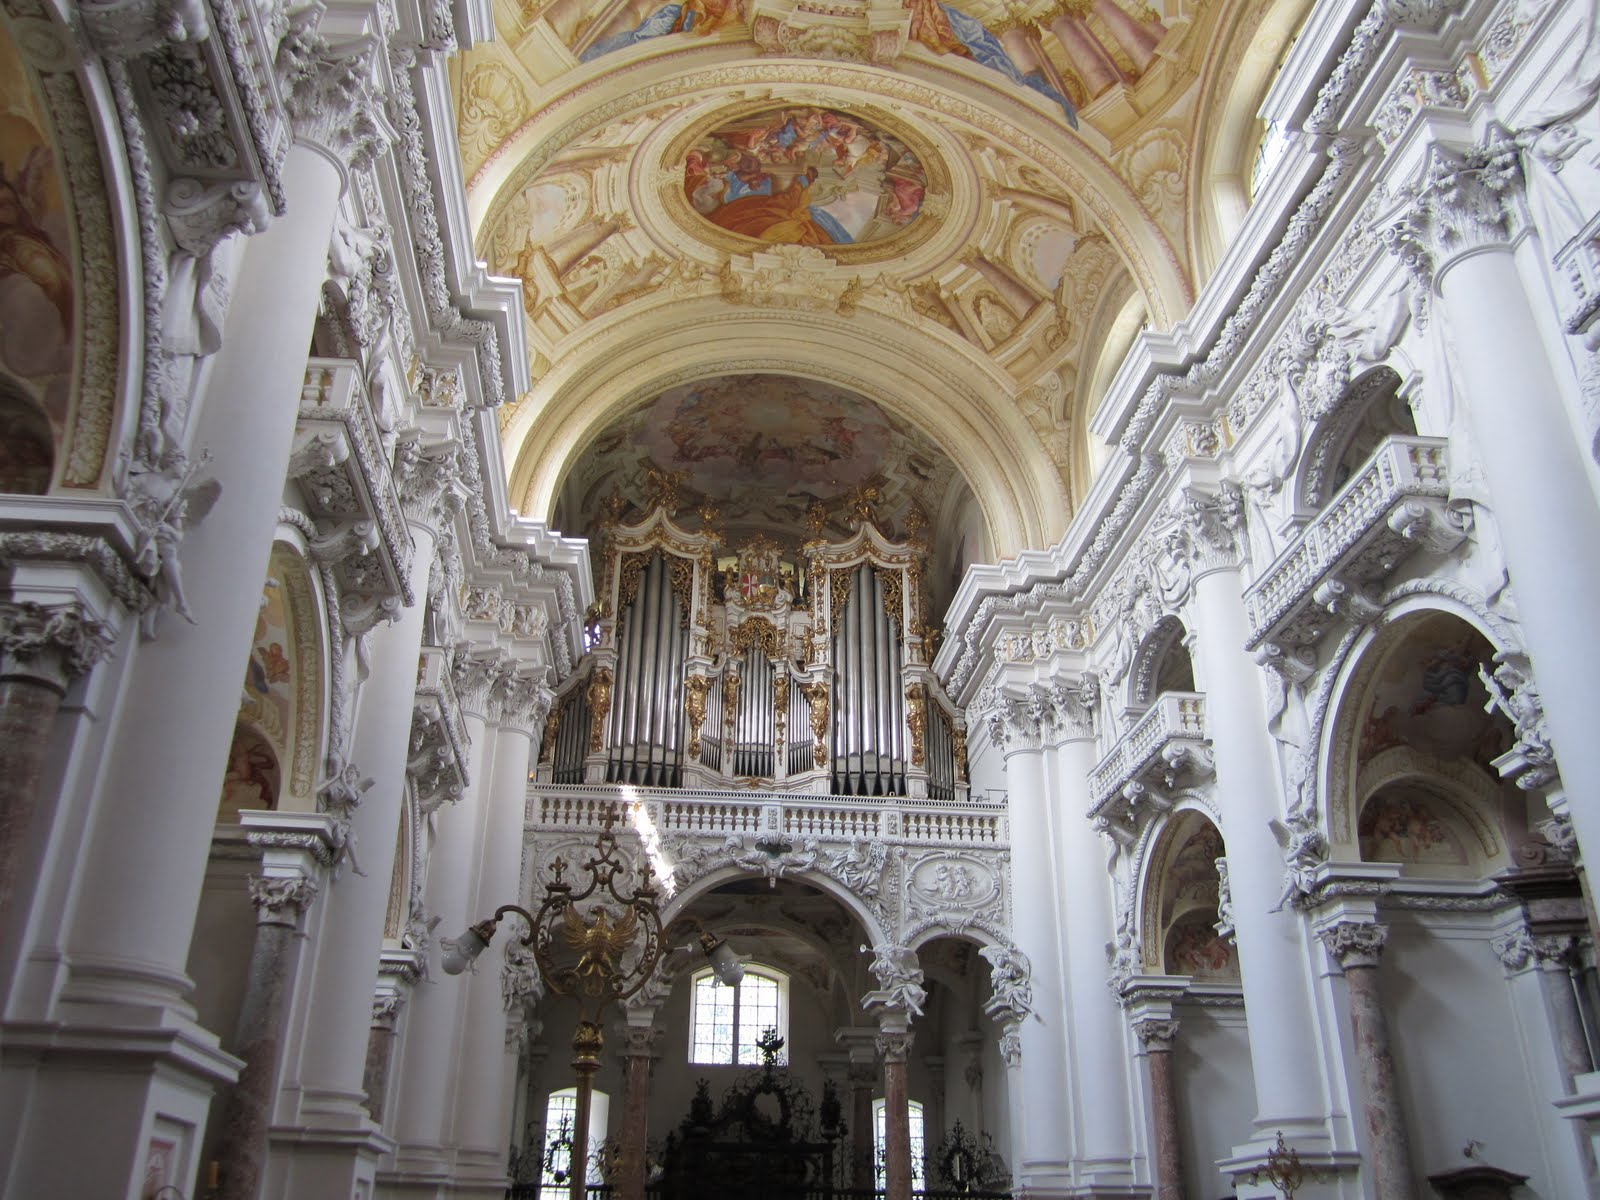 Saint Florian Abbey, Austria, Organ and ceiling view